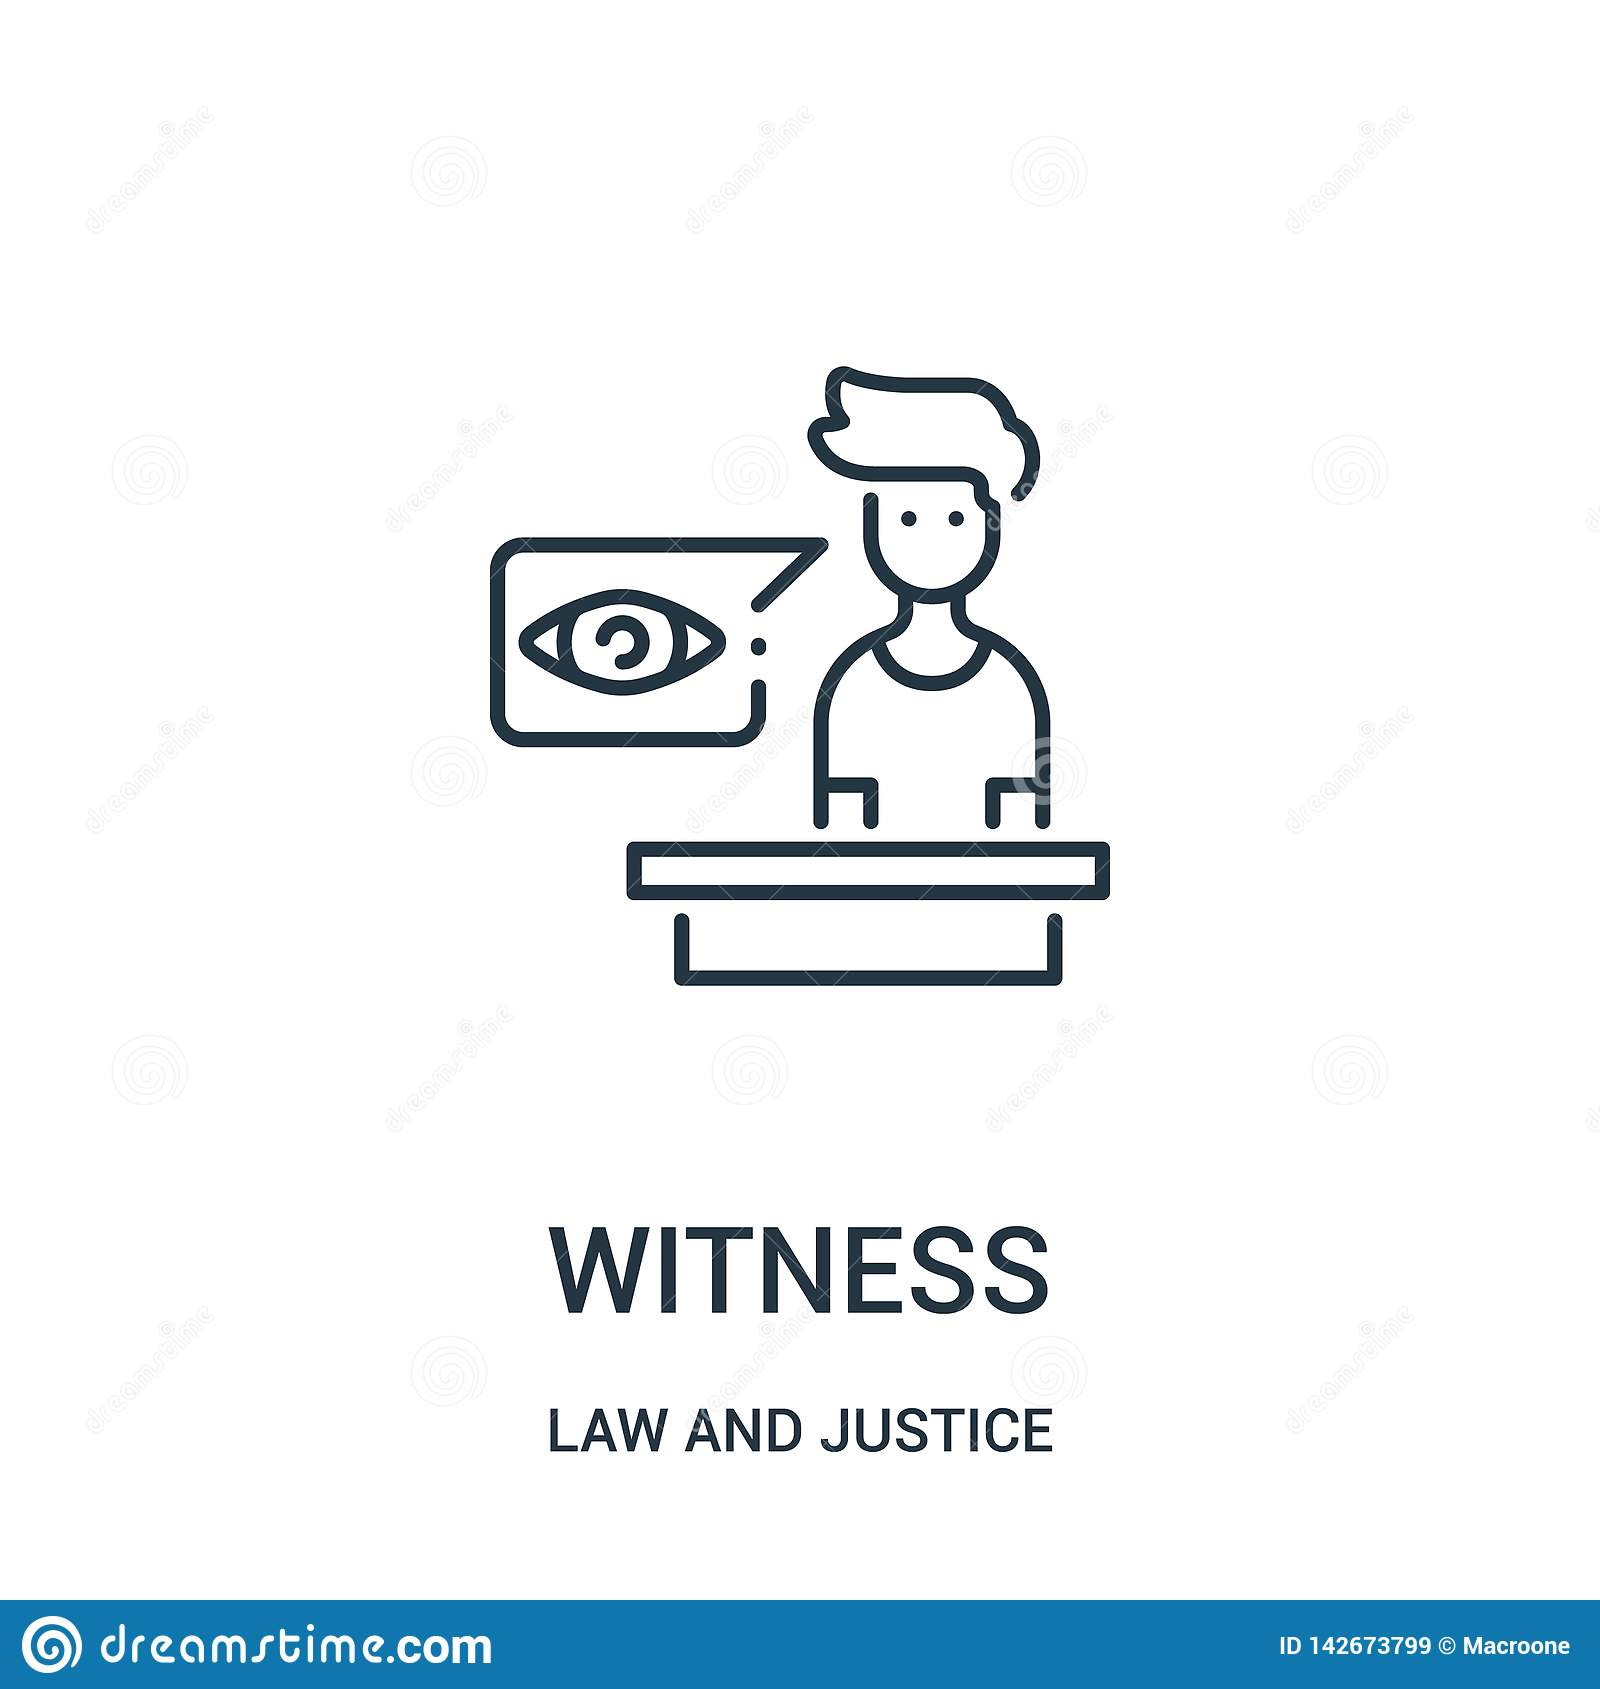 witness icon vector from law and justice collection. Thin line witness outline icon vector illustration. Linear symbol for use on